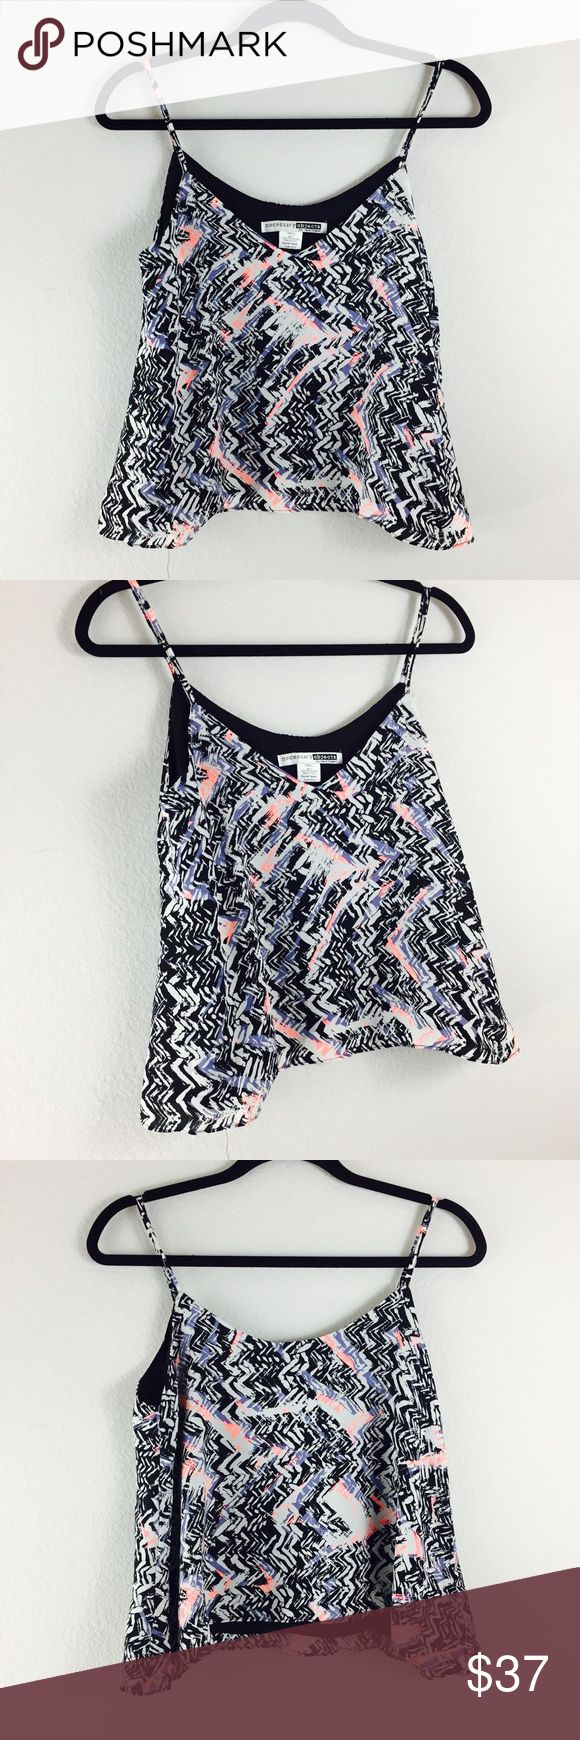 """Necessary Objects Printed Halter Cami Necessary Objects Printed Halter Cami   Details:  A loose fit sleeveless top is styled with allover print. * Wide {Pit to Pit}: 16""""  * Long: 20""""  * Colors: Black, White, Coral & Purple  *  V-neck * Sleeveless * V-back *  Lined * Size: Small * Retail Price: $72 * NWOT  * Made in USA  Fiber Content * 100% Polyester  Care * Dry clean or hand wash cold  🏷 Matching shorts also listed in my closet.   📌Measurements are approximate  ✂️ 15% Discount on 2 of…"""